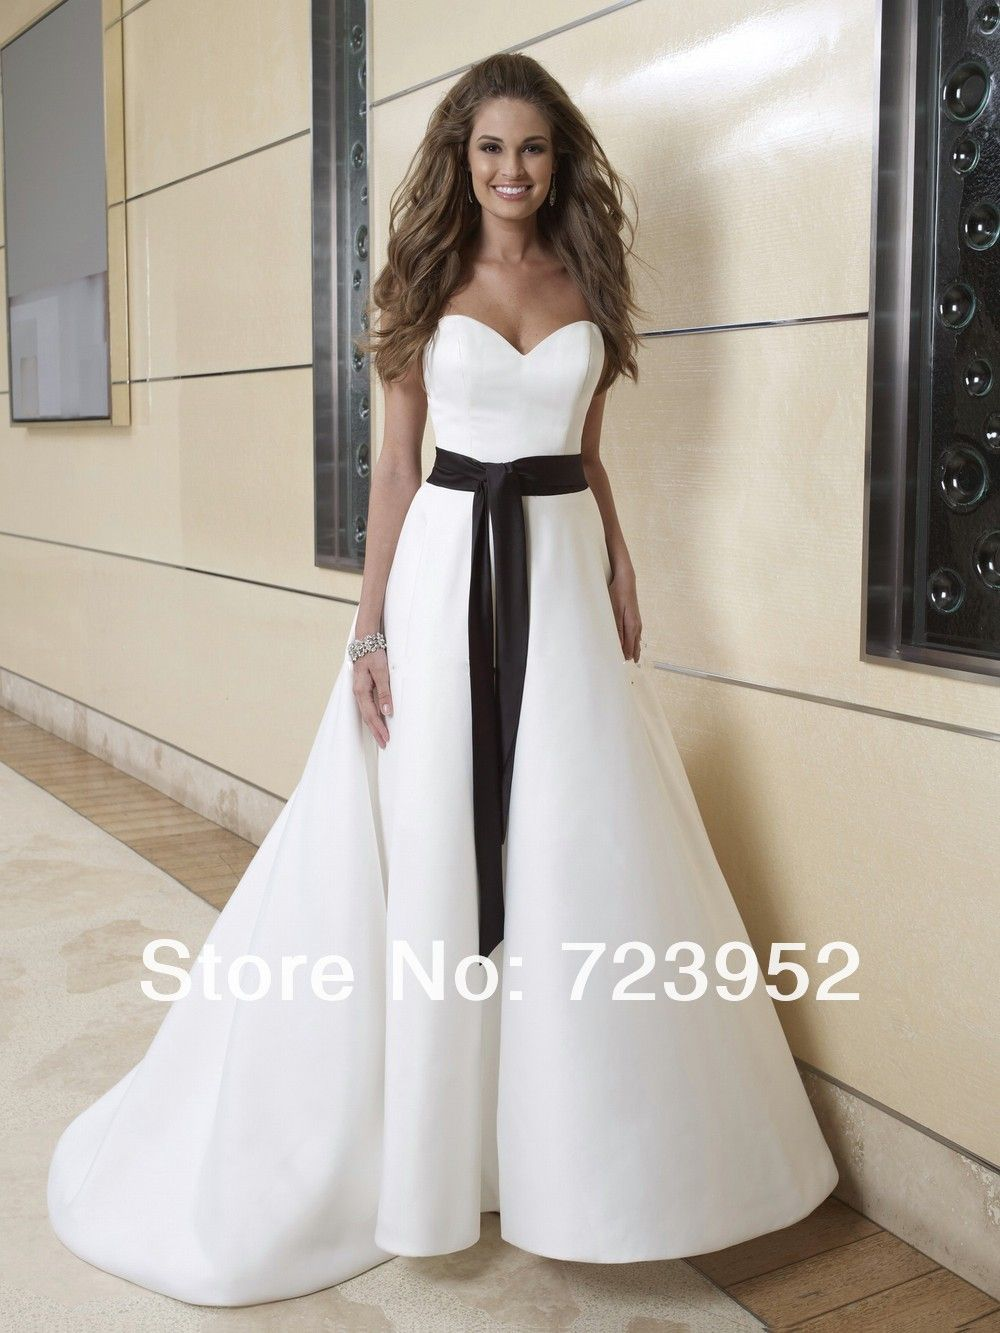 Simple satin dress weddings pinterest satin dresses cruise